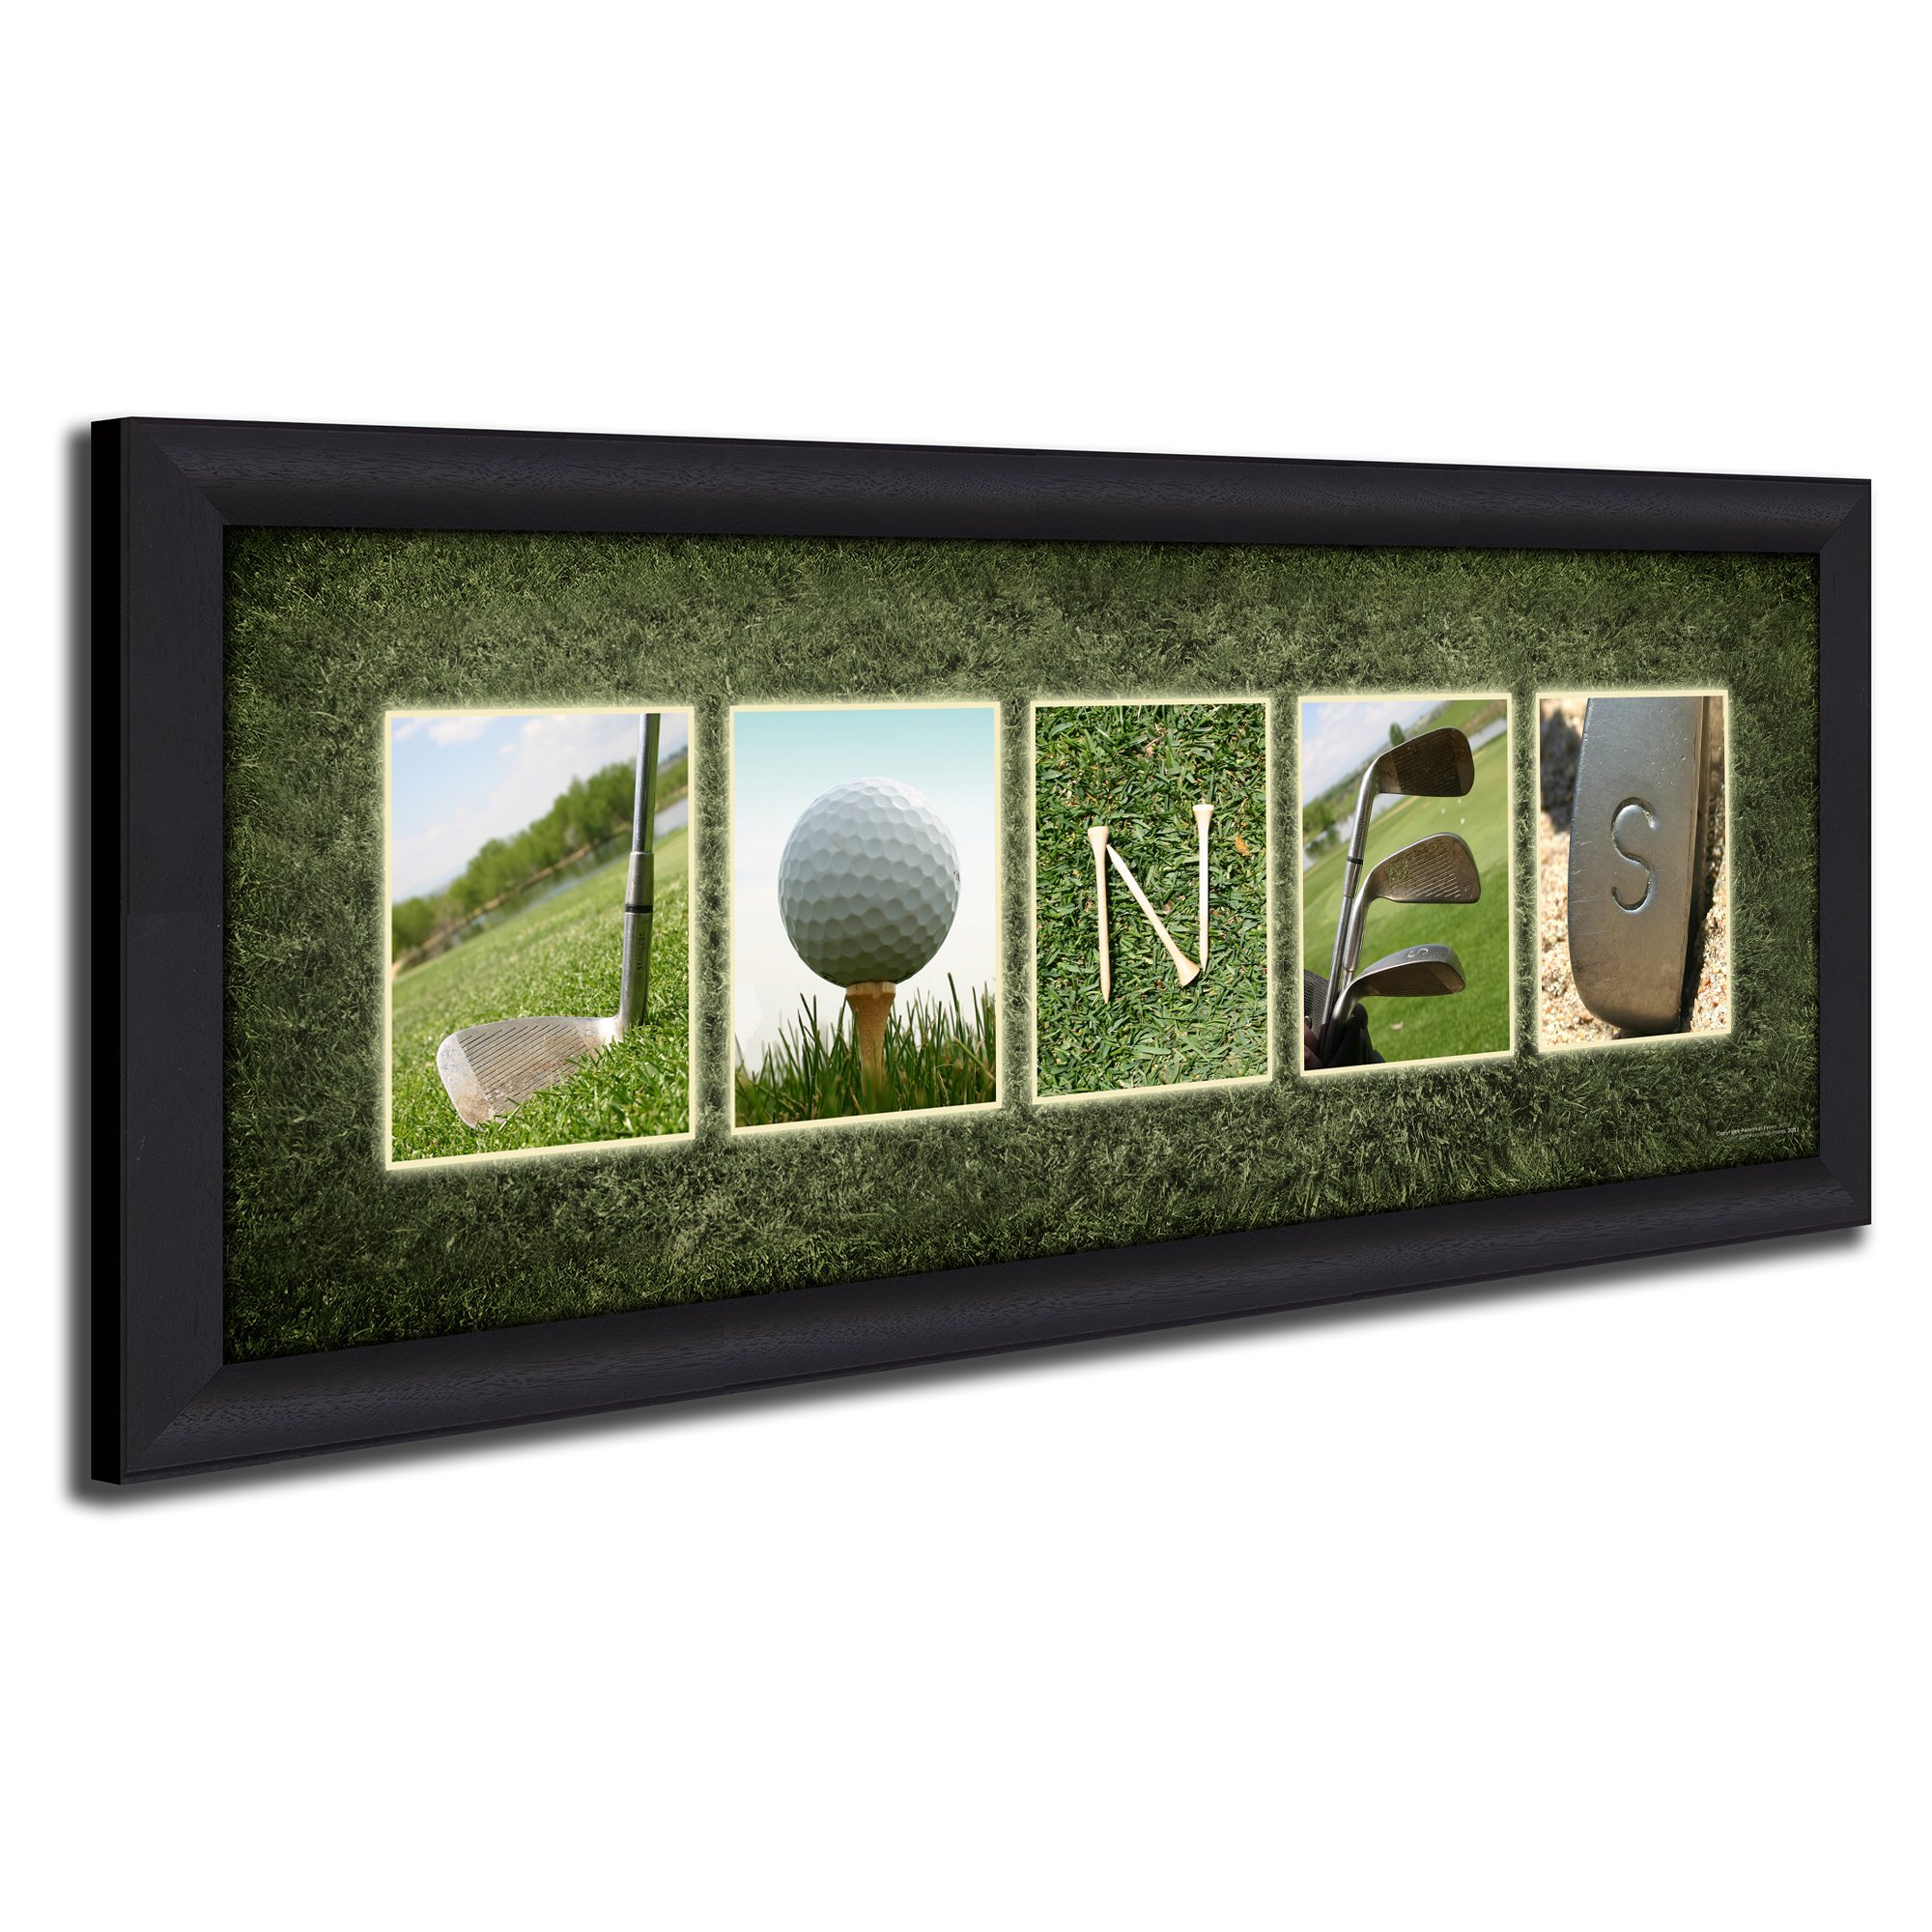 Framed Canvas - Personalized Golf Name Art - Perfect and unique customized gift for the golfer or golf enthusiast by Personal Prints